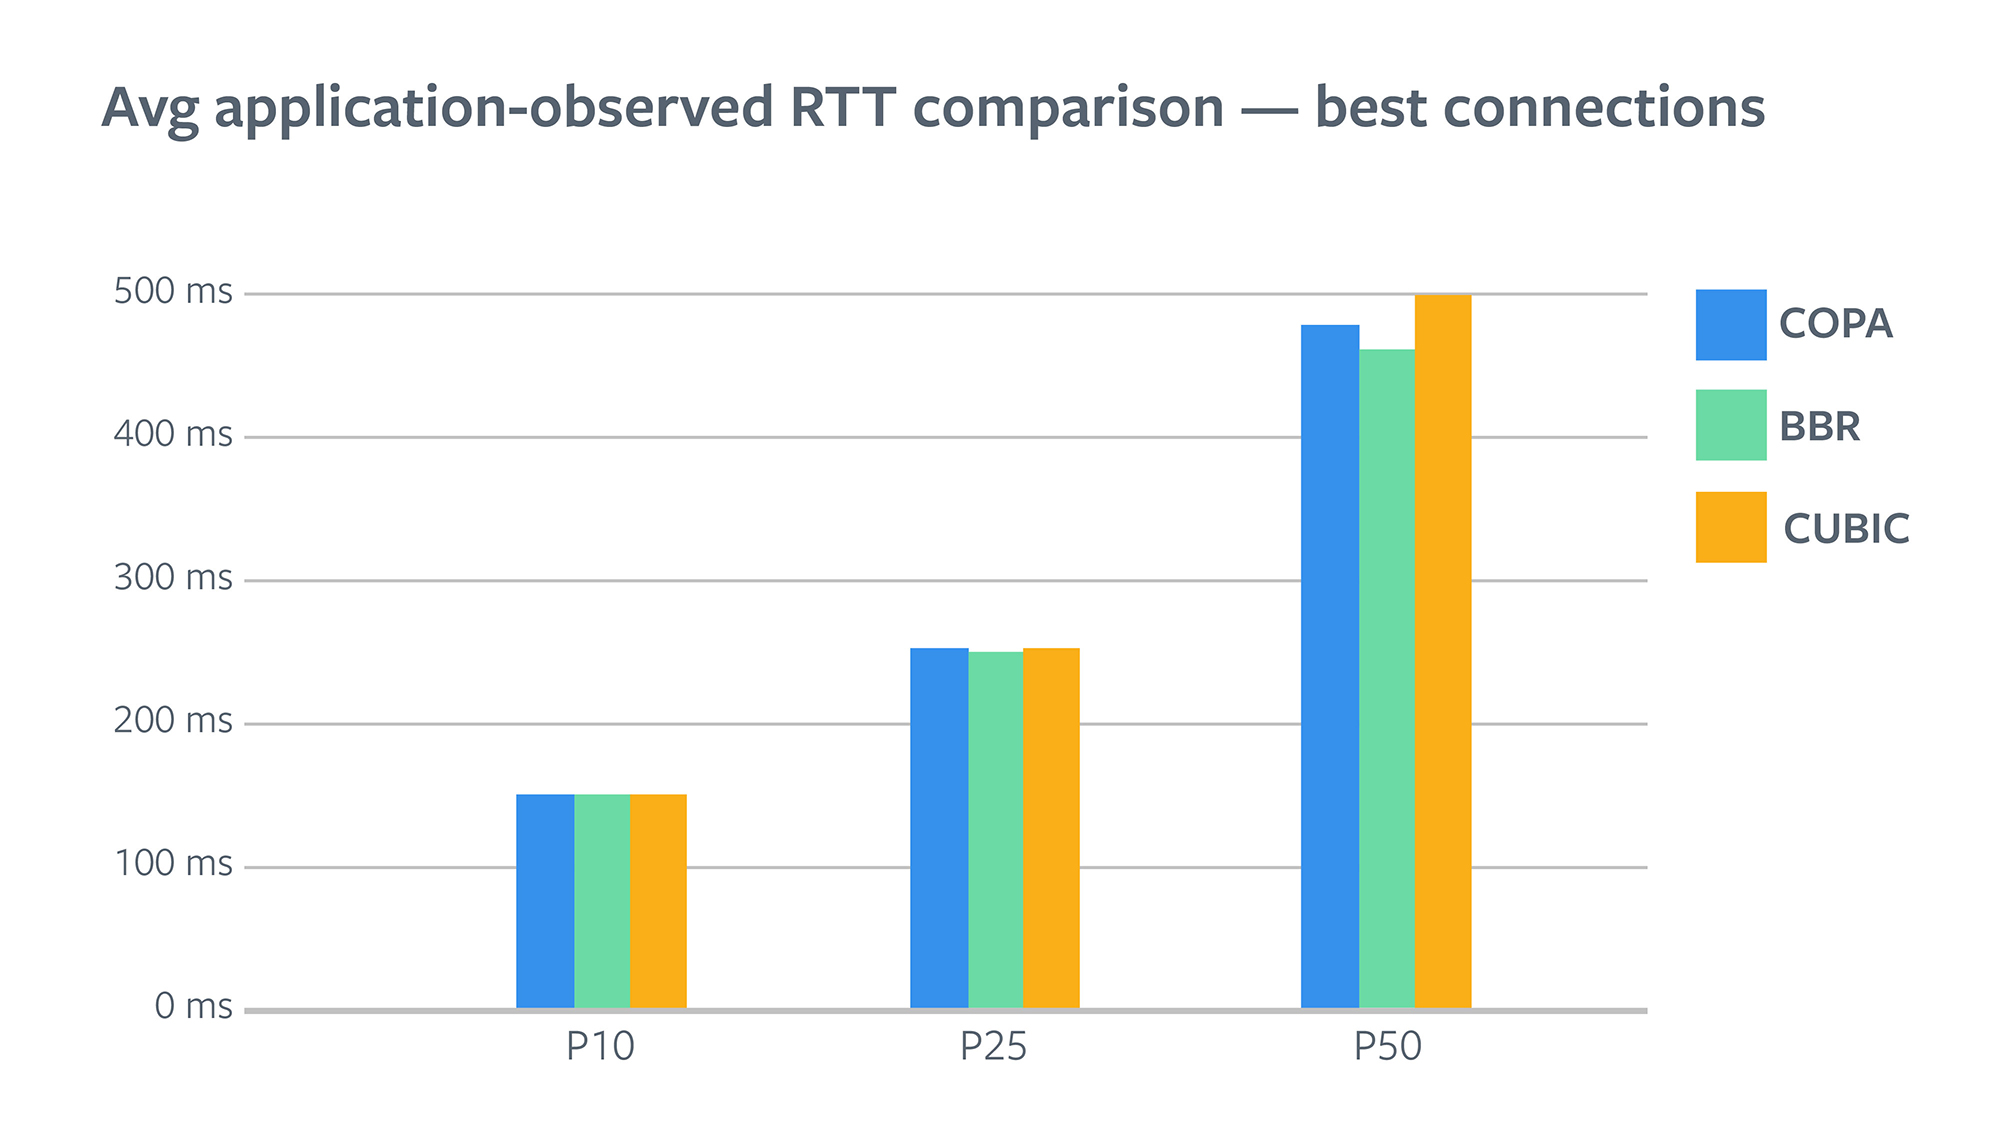 Average application observed RTT comparison - best connections